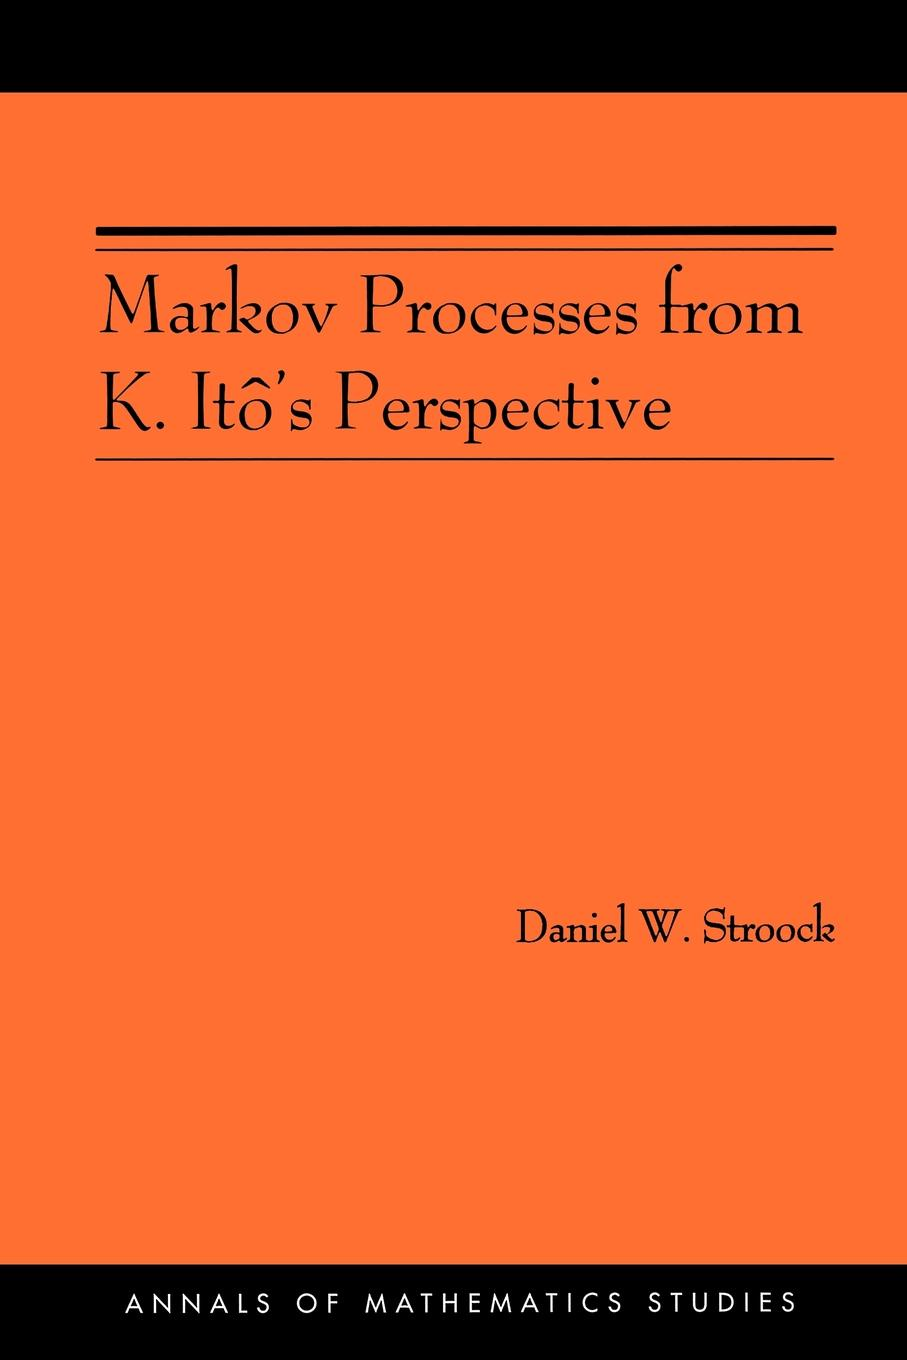 Daniel W. Stroock Markov Processes from K. Ito's Perspective (AM-155) m l silverstein boundary theory for symmetric markov processes